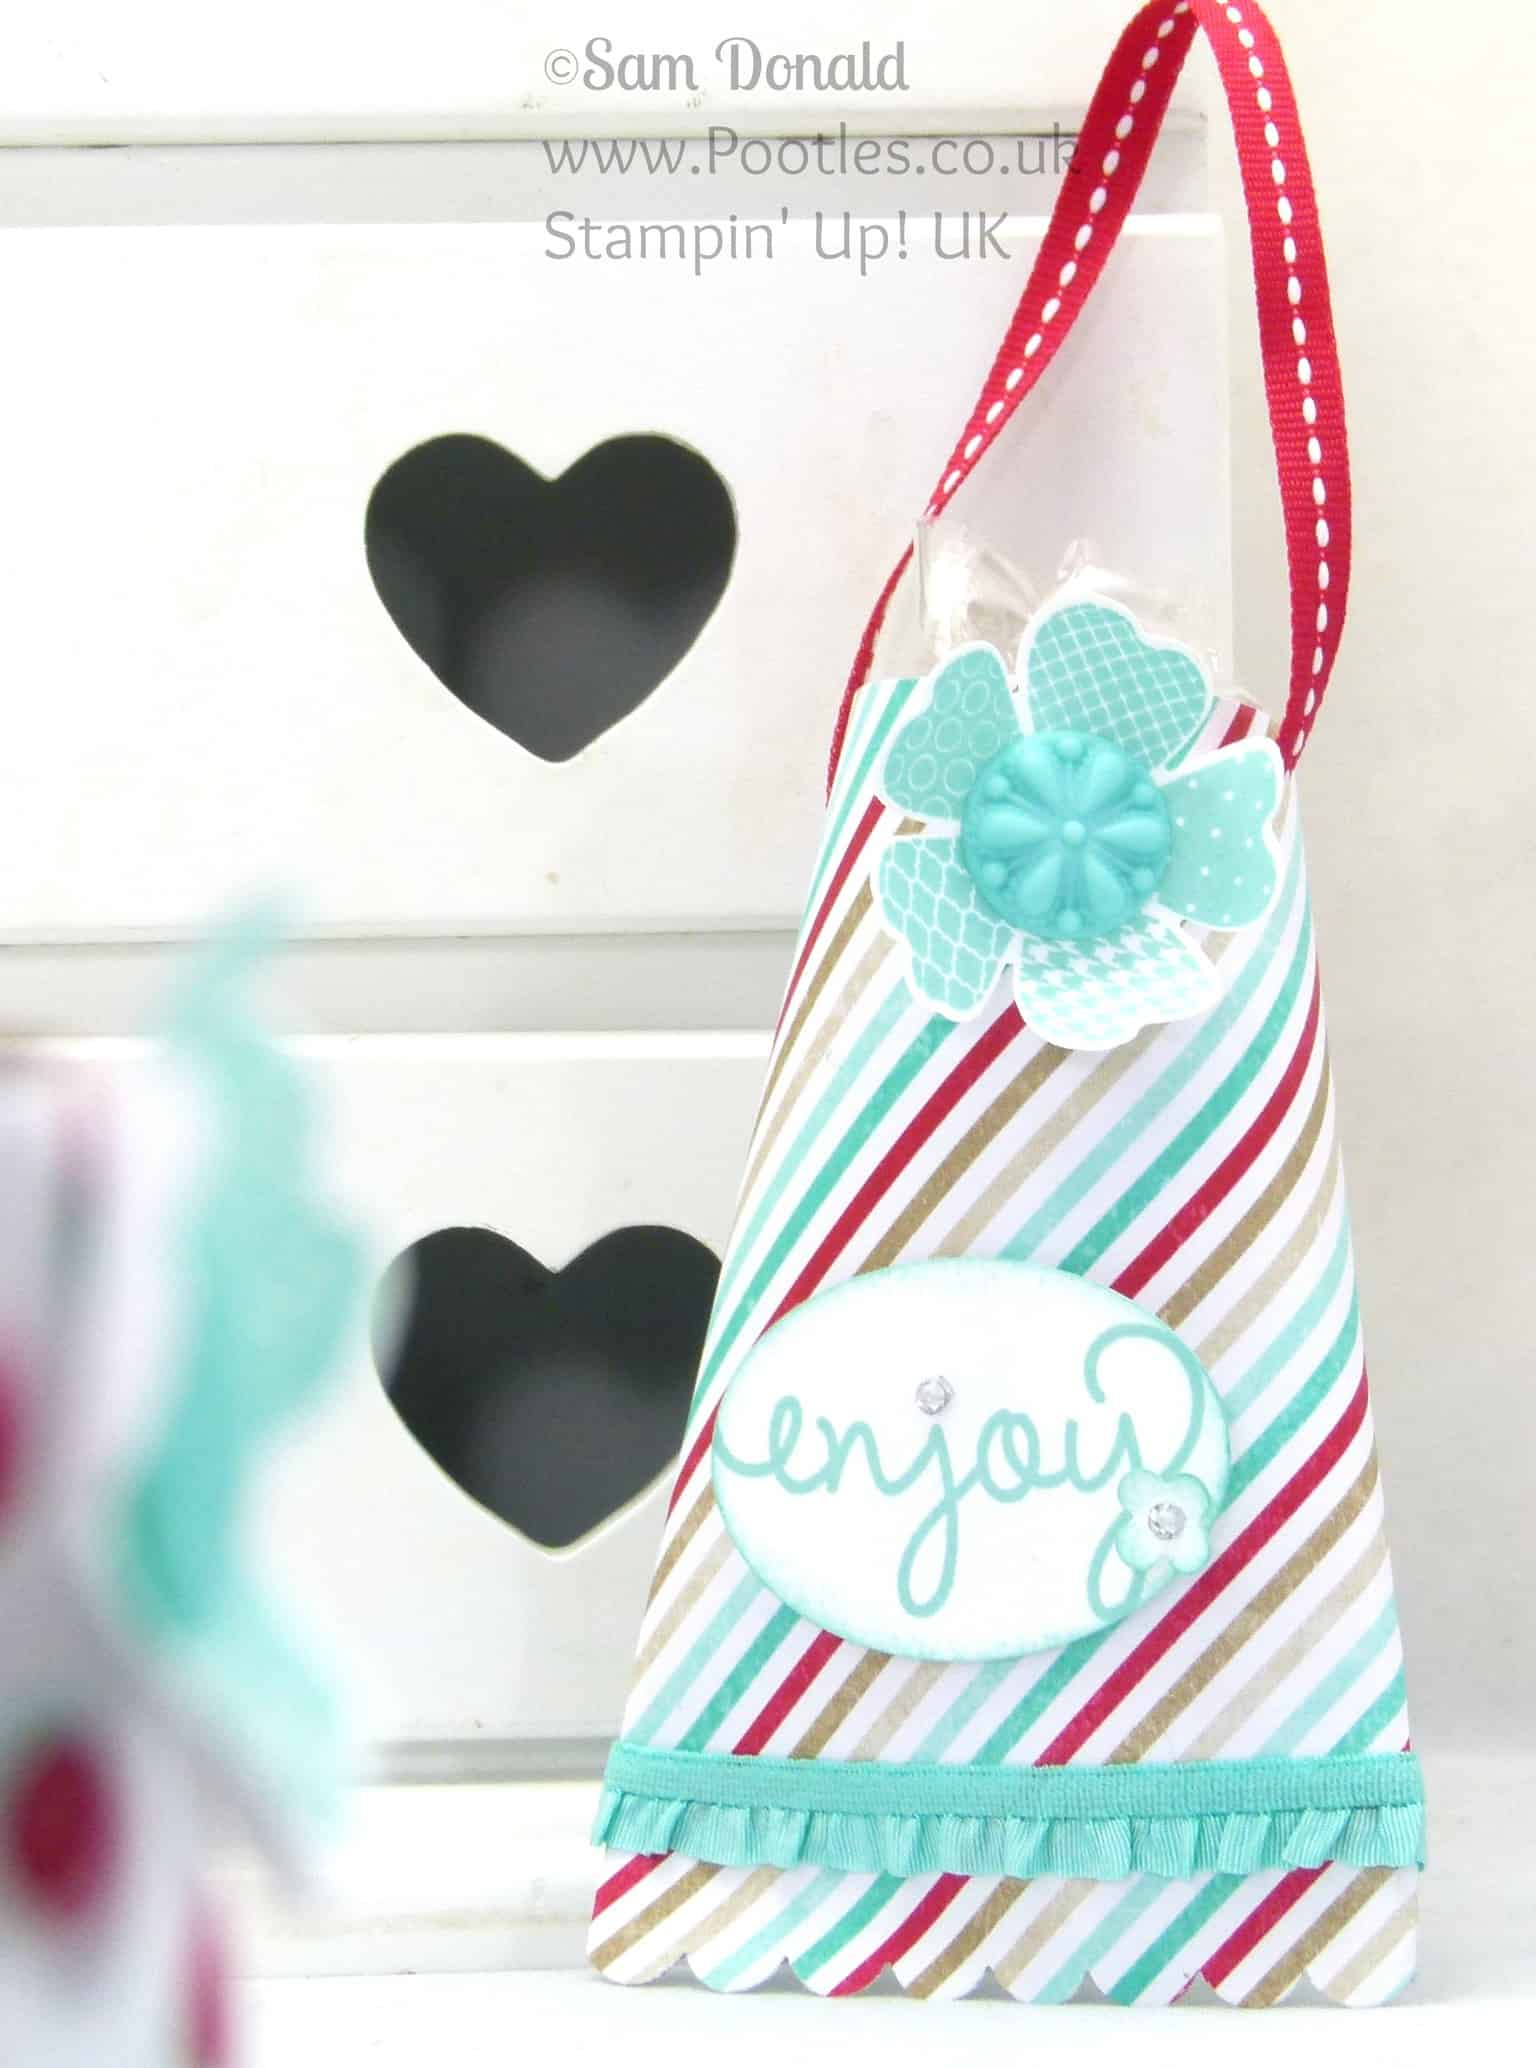 POOTLES Stampin' Up! UK Hanging Treat Pouch